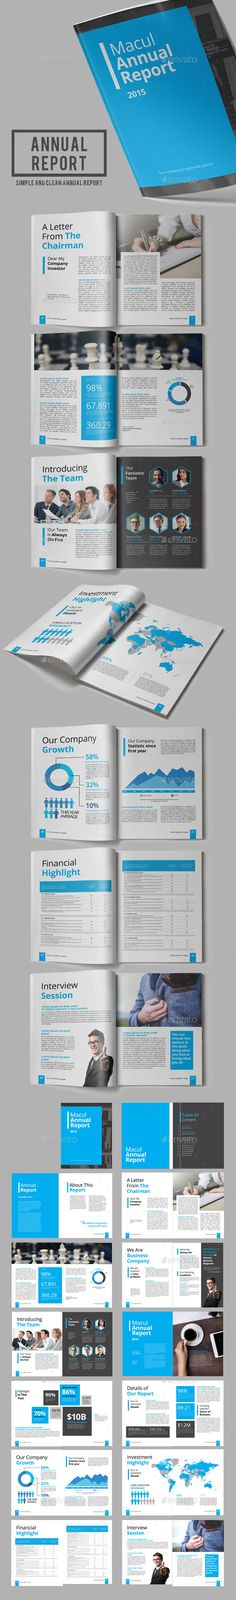 The Annual Report Template InDesign INDD #design Download   - annual report template design